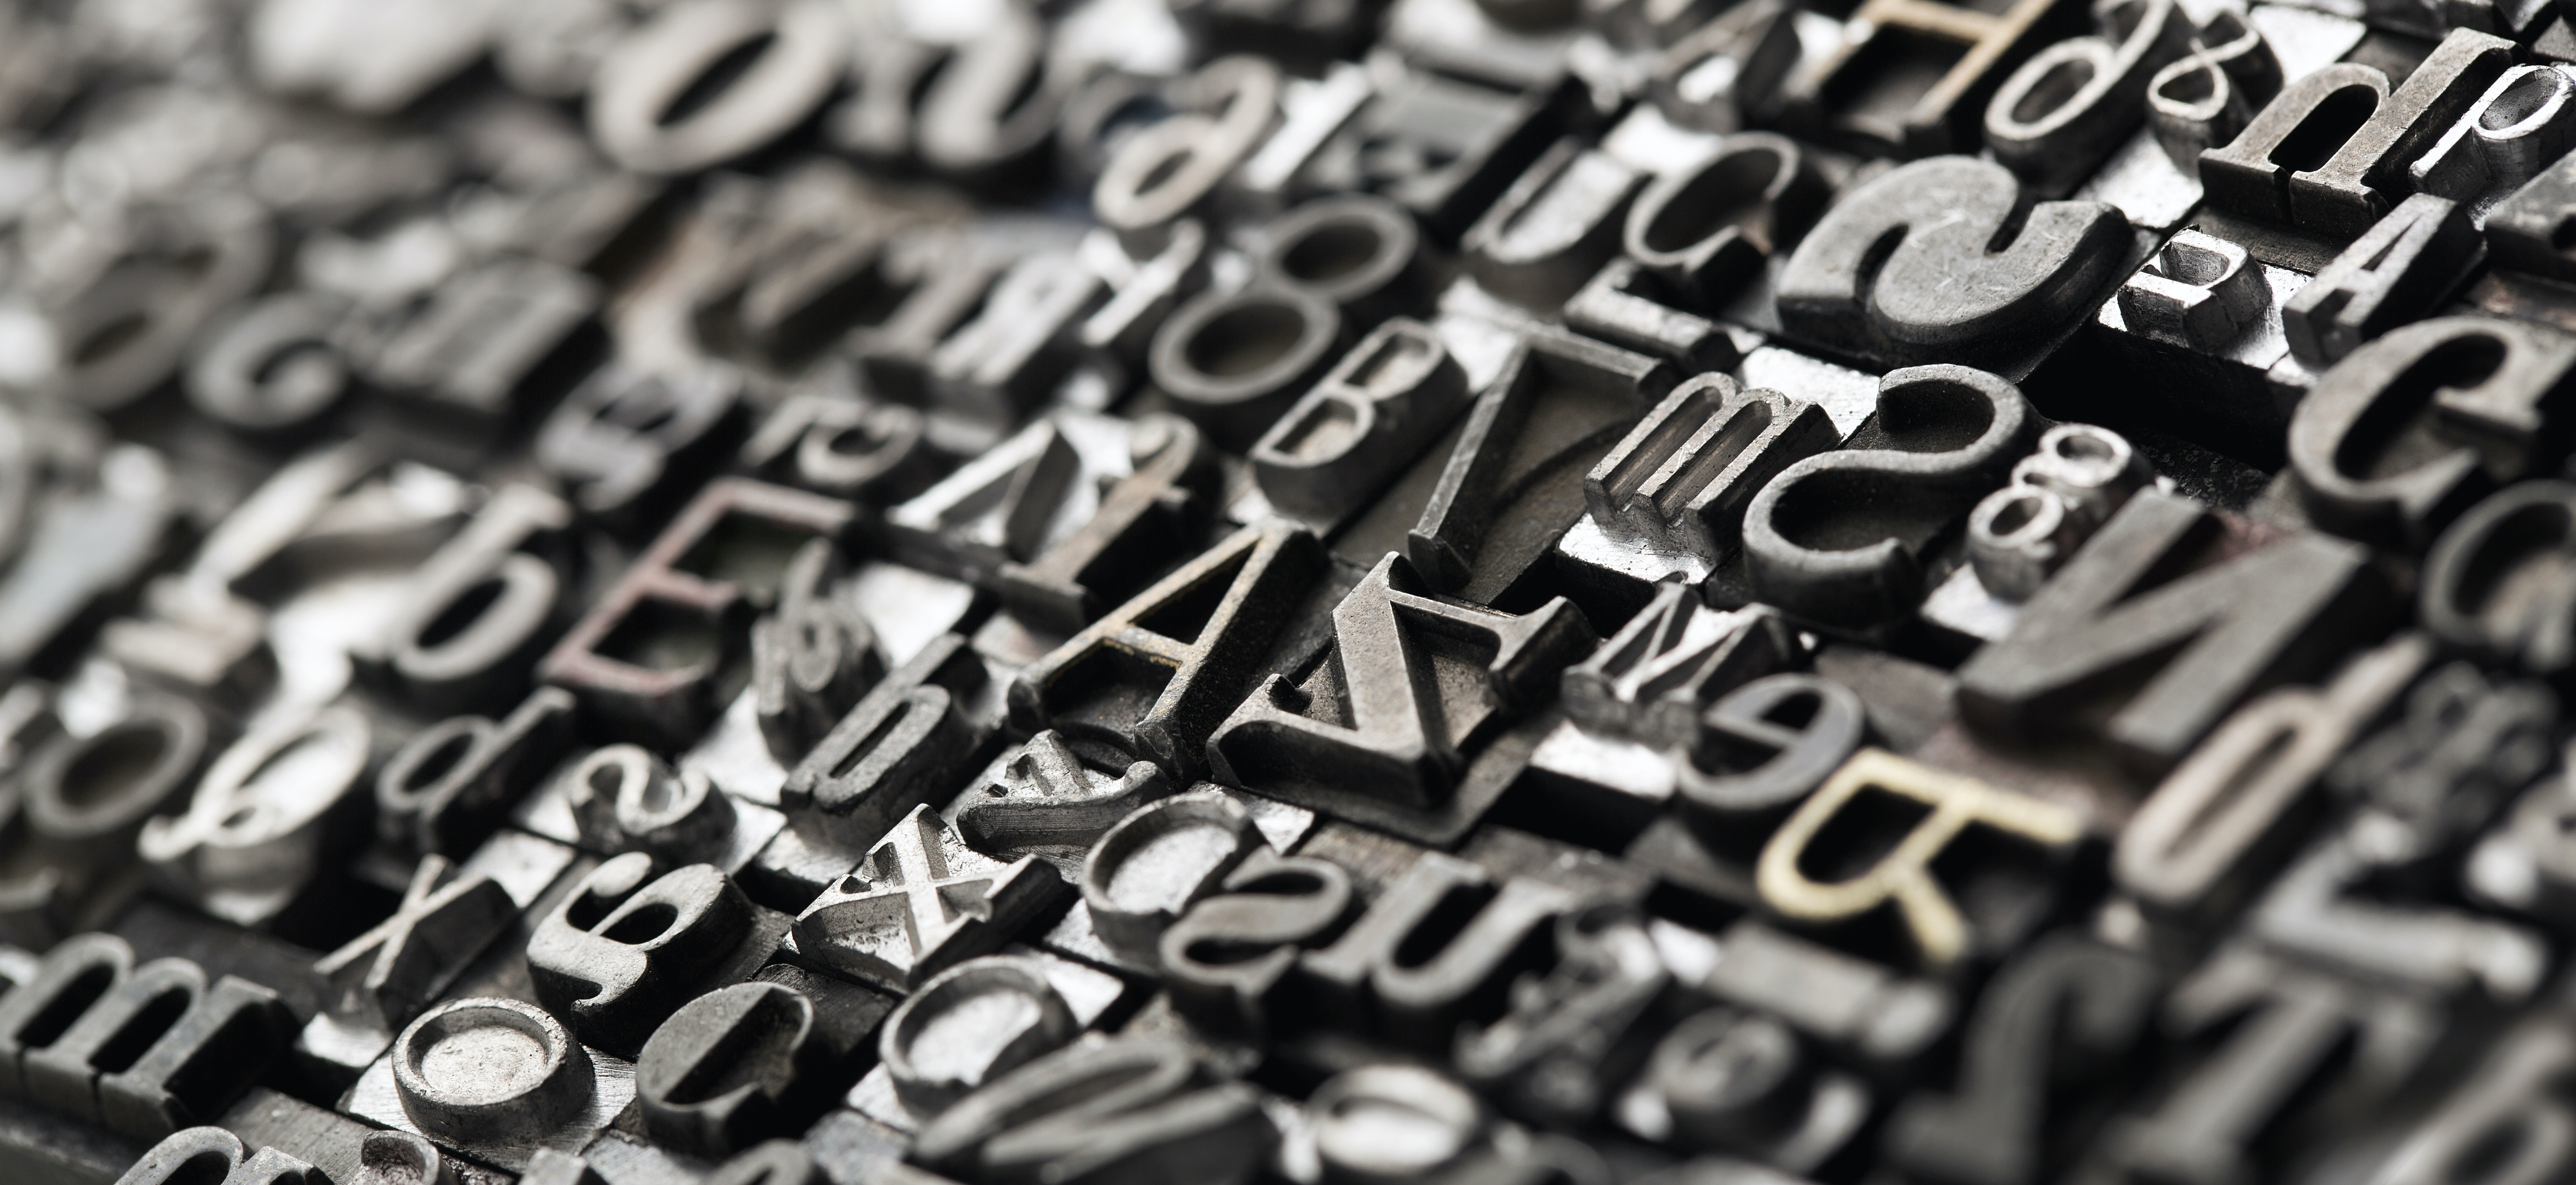 SaaS Acronyms Defined and Explained